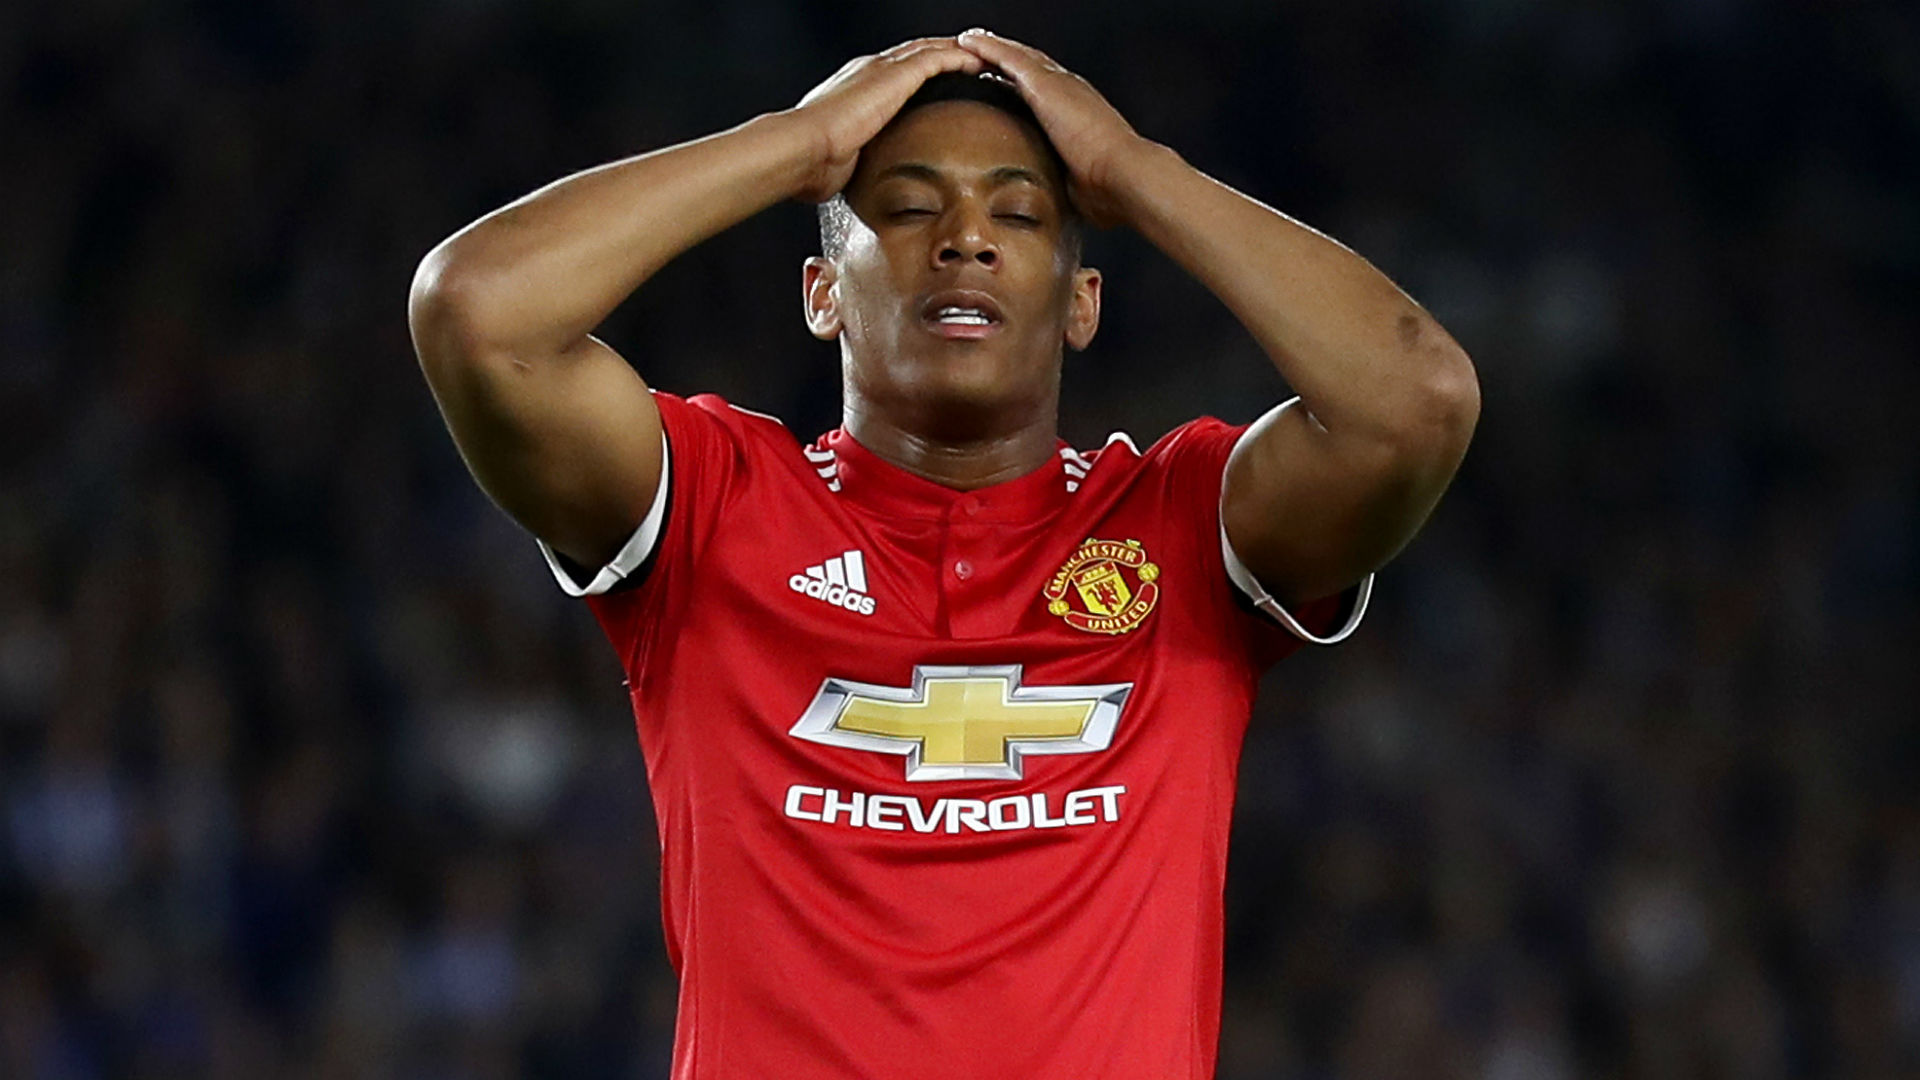 You can't do whatever you want in life – Mourinho responds to Martial exit talk